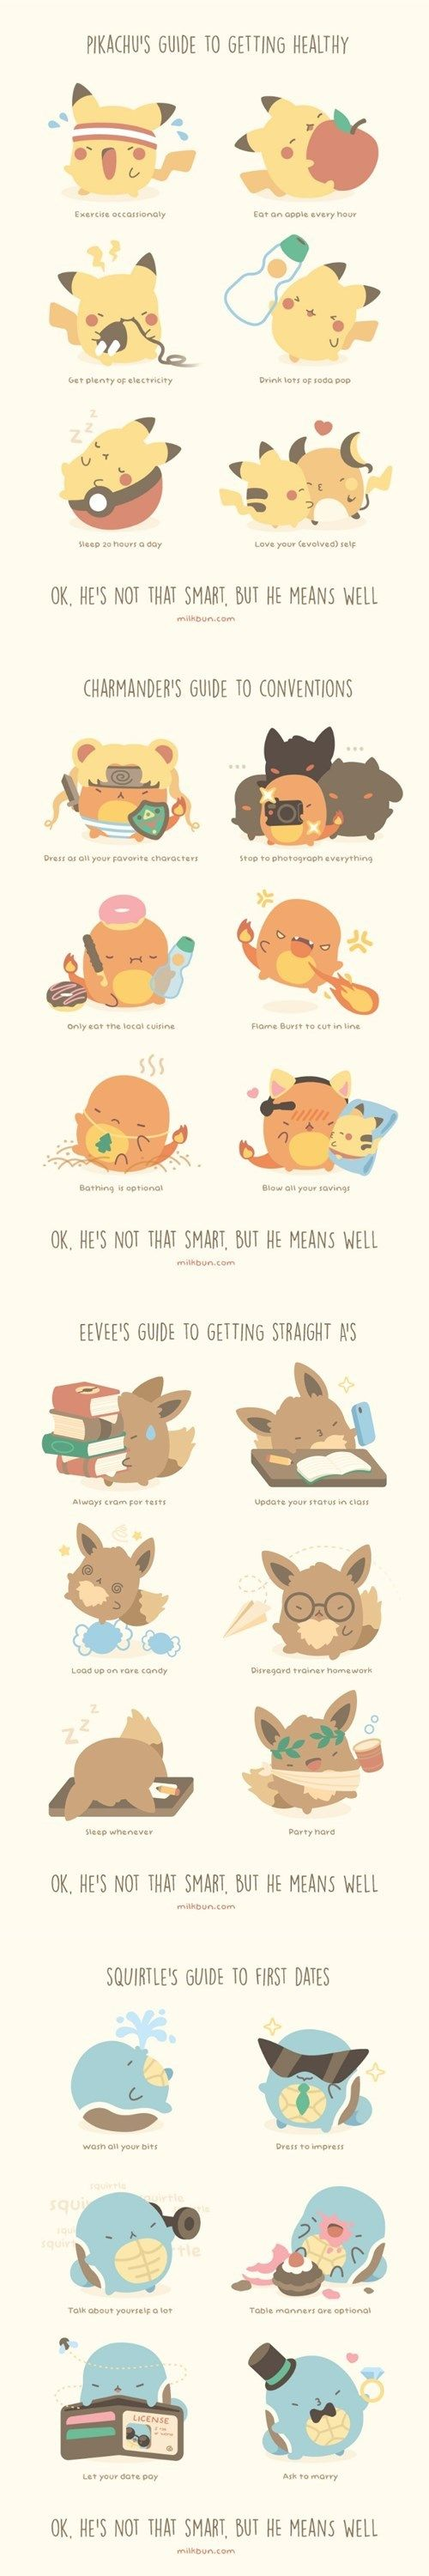 Pokémon Guides to Everyday Things